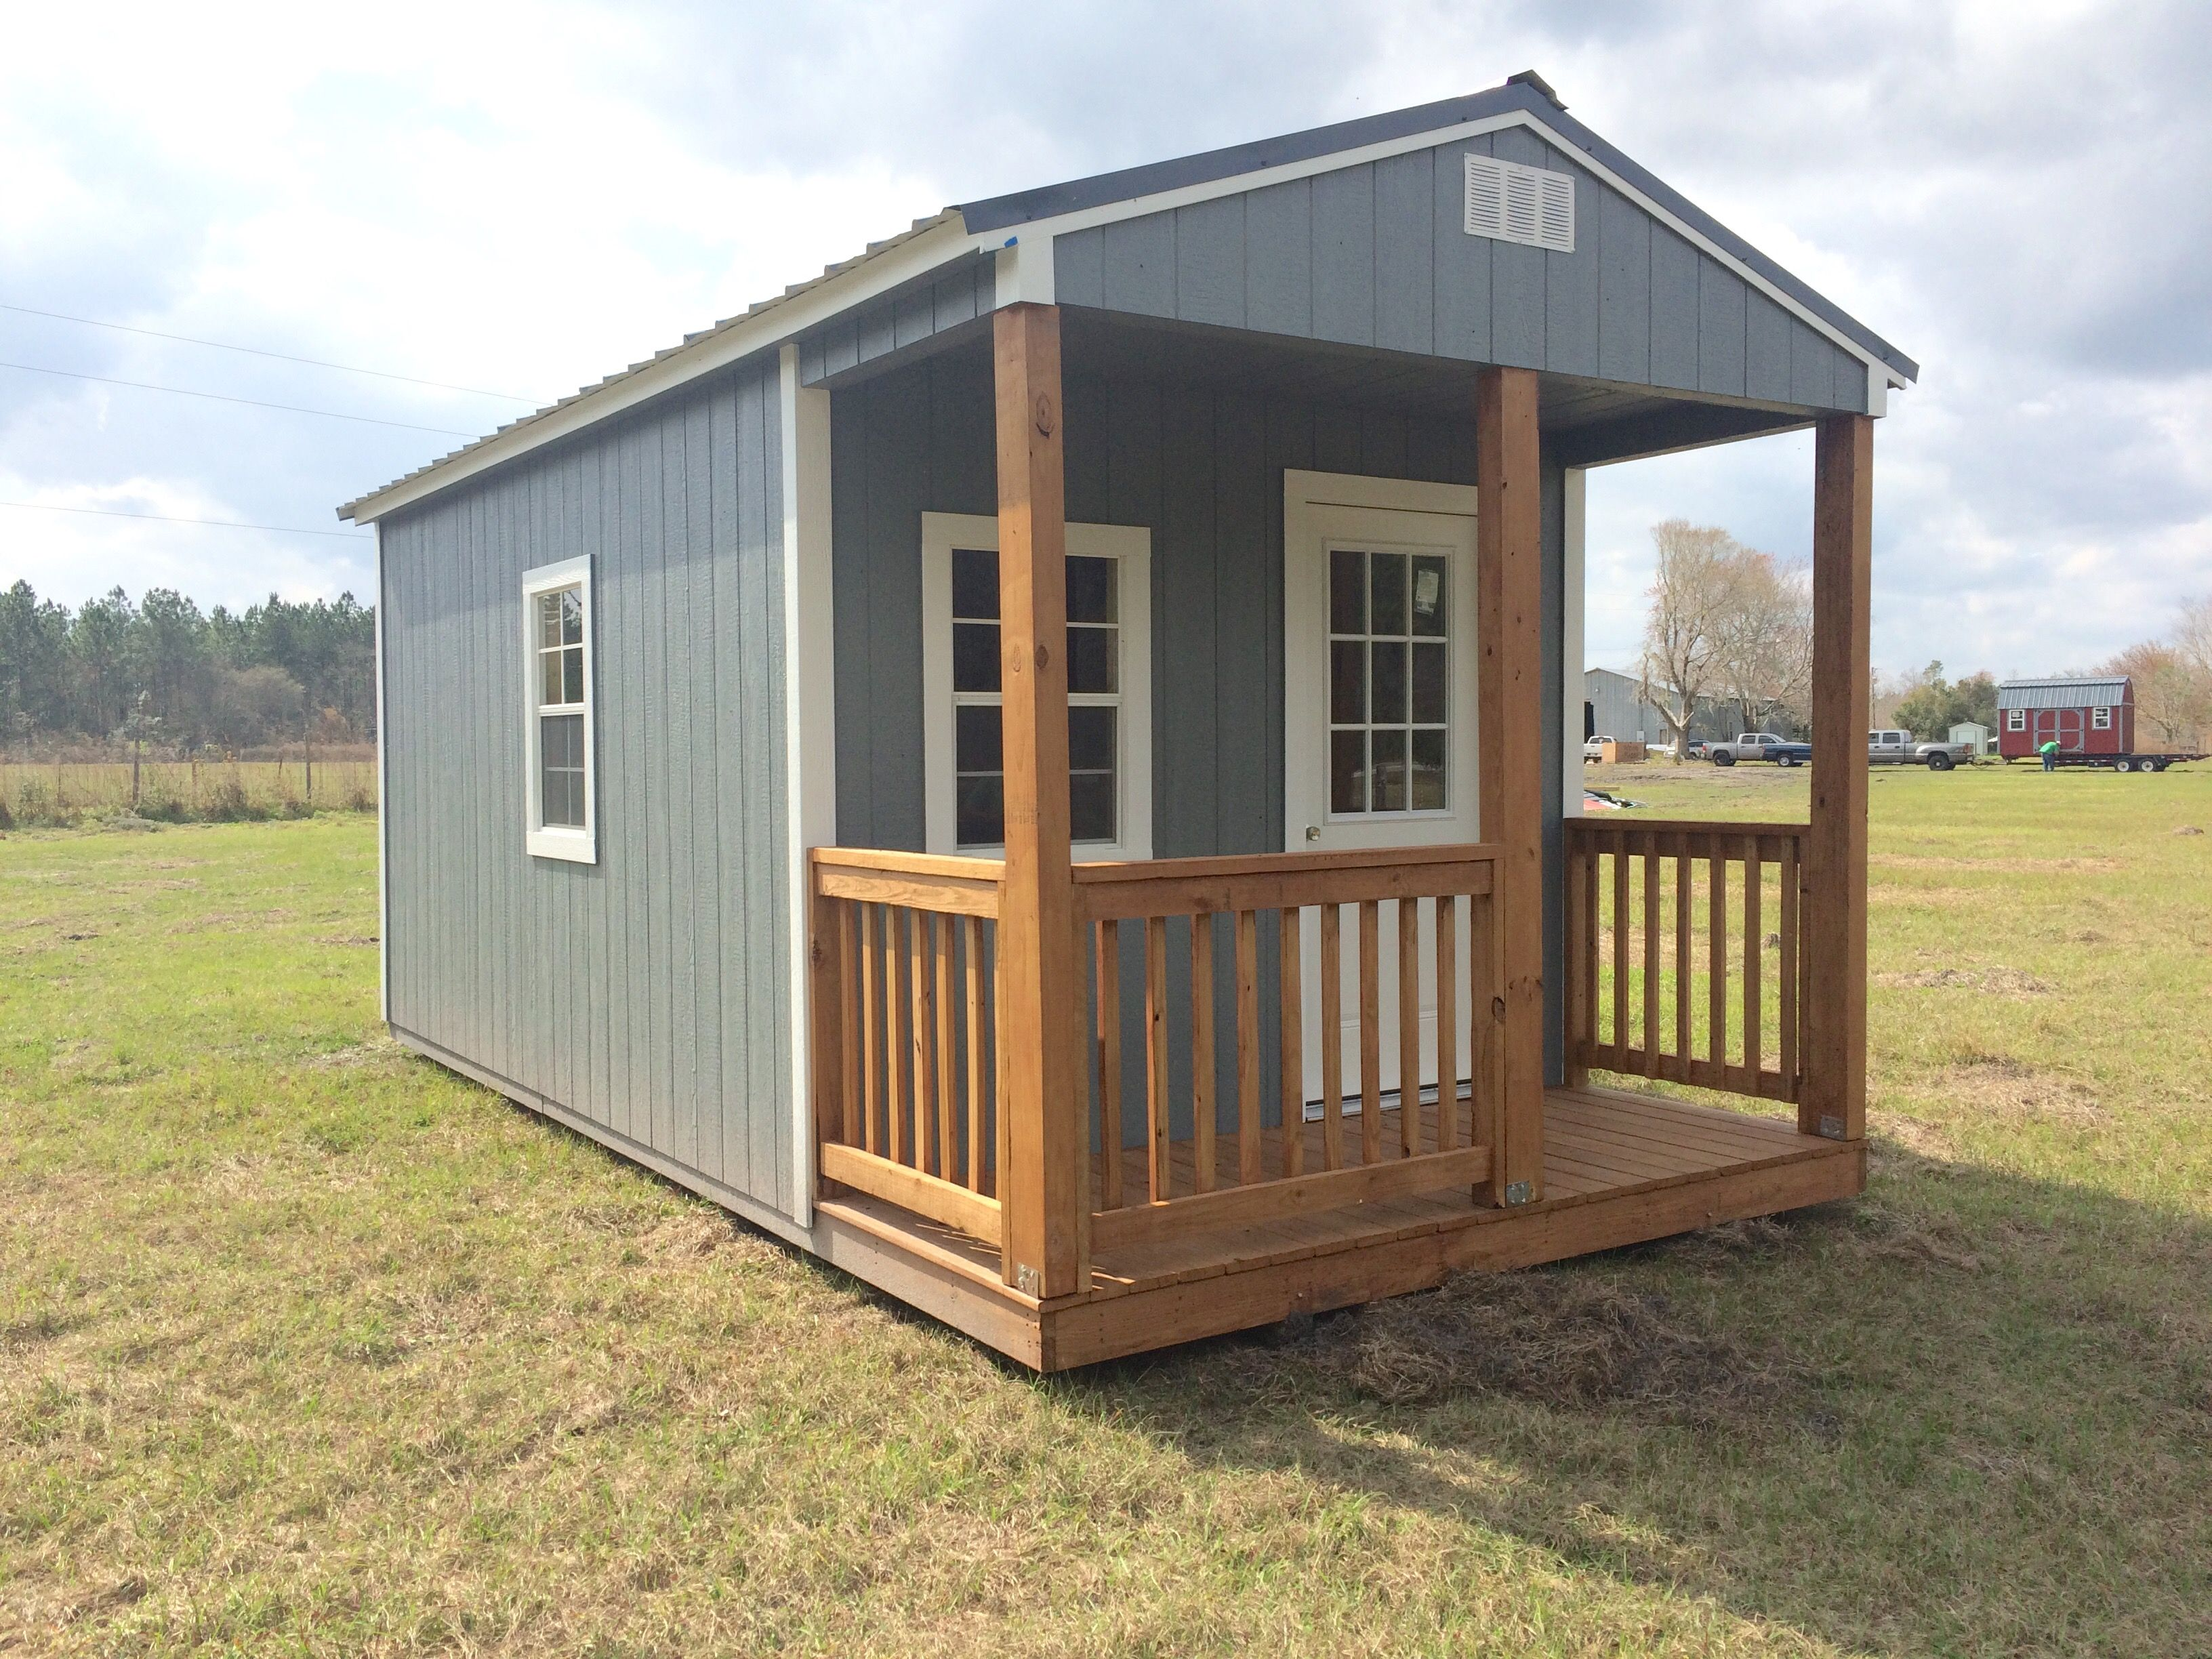 Coastal Portable Buildings Standard Cabin 10x20 Coastalportablebuildings Cabinlife Cabin Storagesolutions Outdoorl Portable Buildings Cabin Life Building